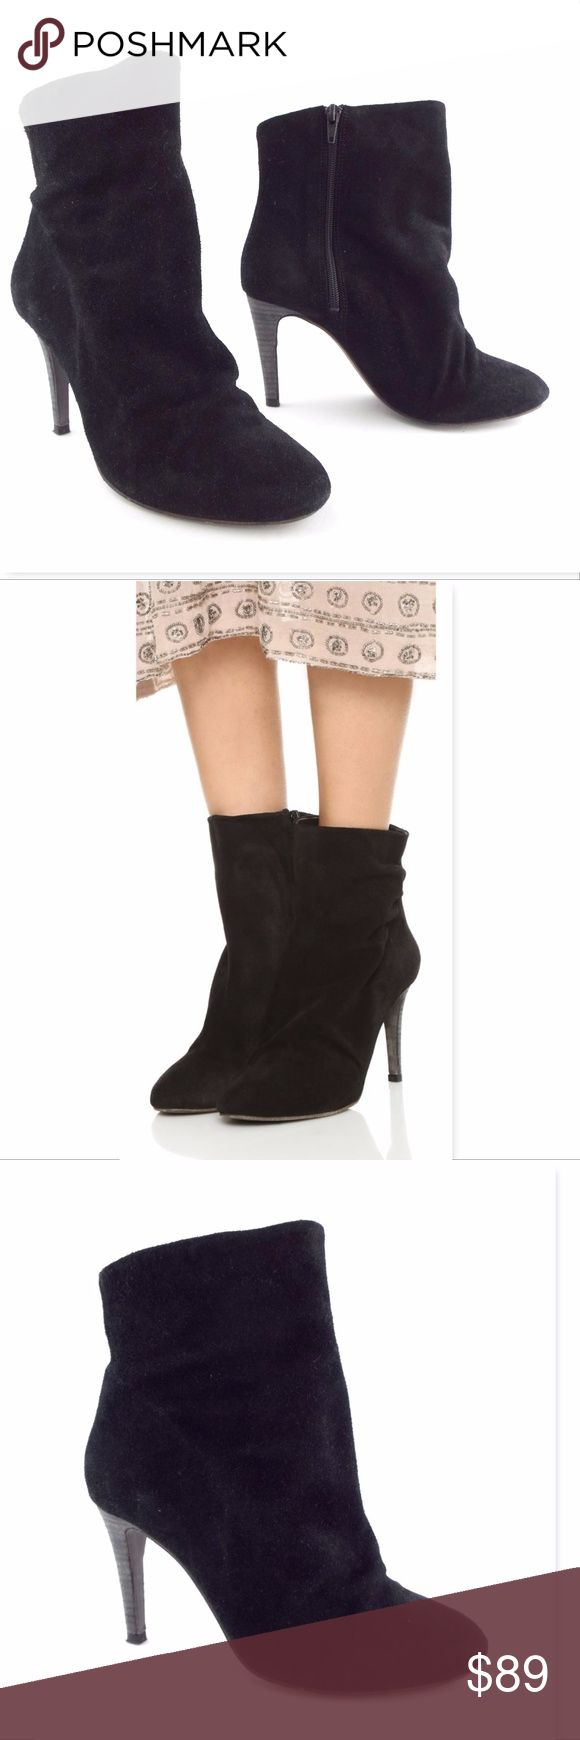 FREE PEOPLE Size 38 Black Suede Slouch Ankle Boots FREE PEOPLE 100% authentic! Black Suede Side Zip Slouch Ankle Boots Size 38 Eur or 7 1/2 - 8 Medium Very lightly worn and excellent looking! All actual photos of the item except for pic #2 Free People Shoes Ankle Boots & Booties